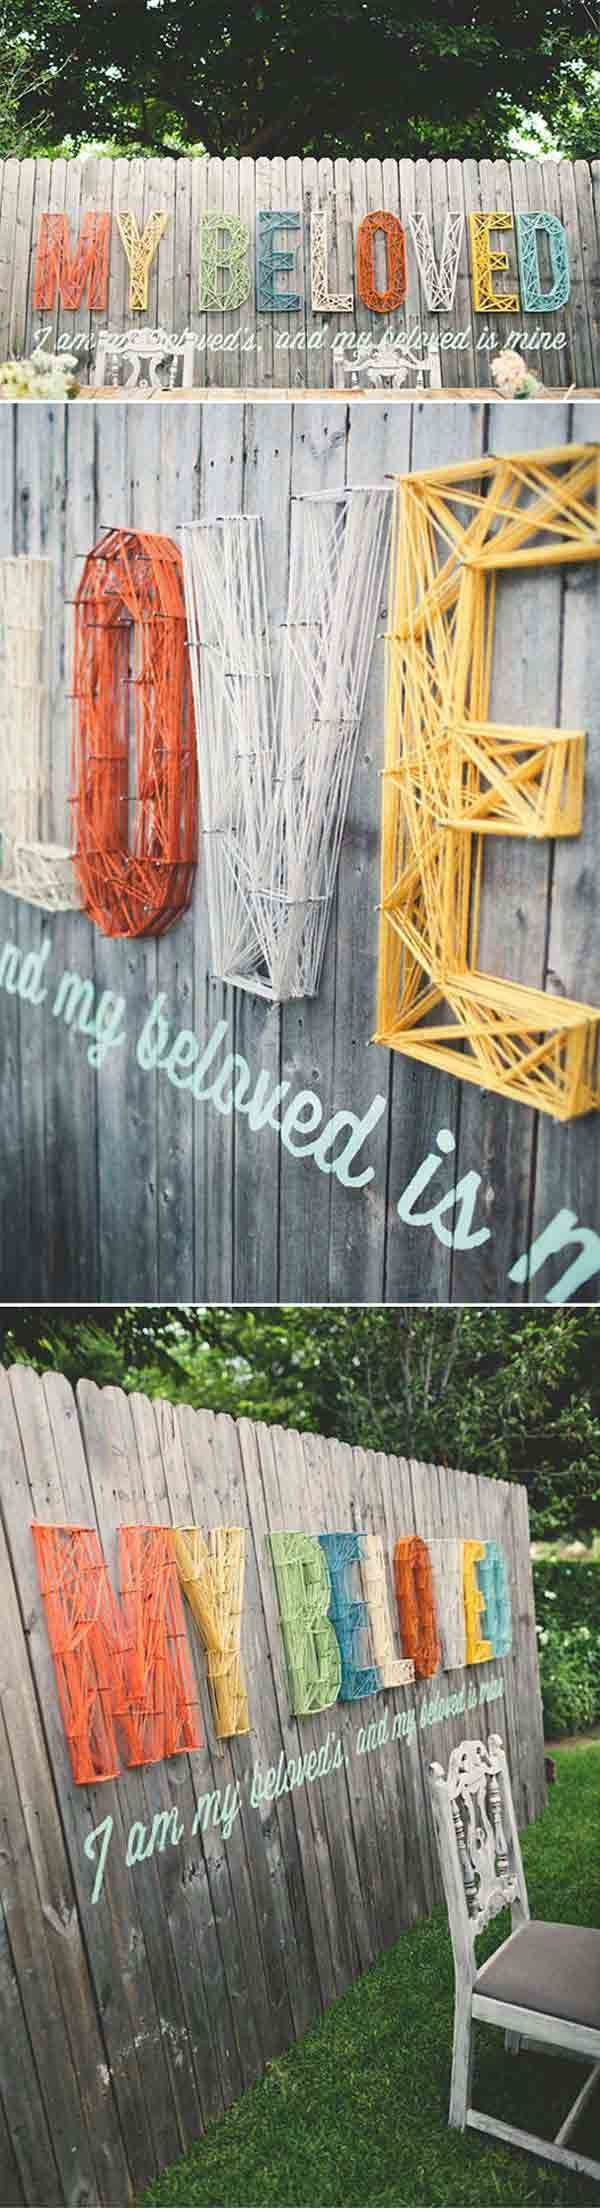 diy backyard fence decor | 15.Custom freestanding fence pimped out with wool, yarn, and nails